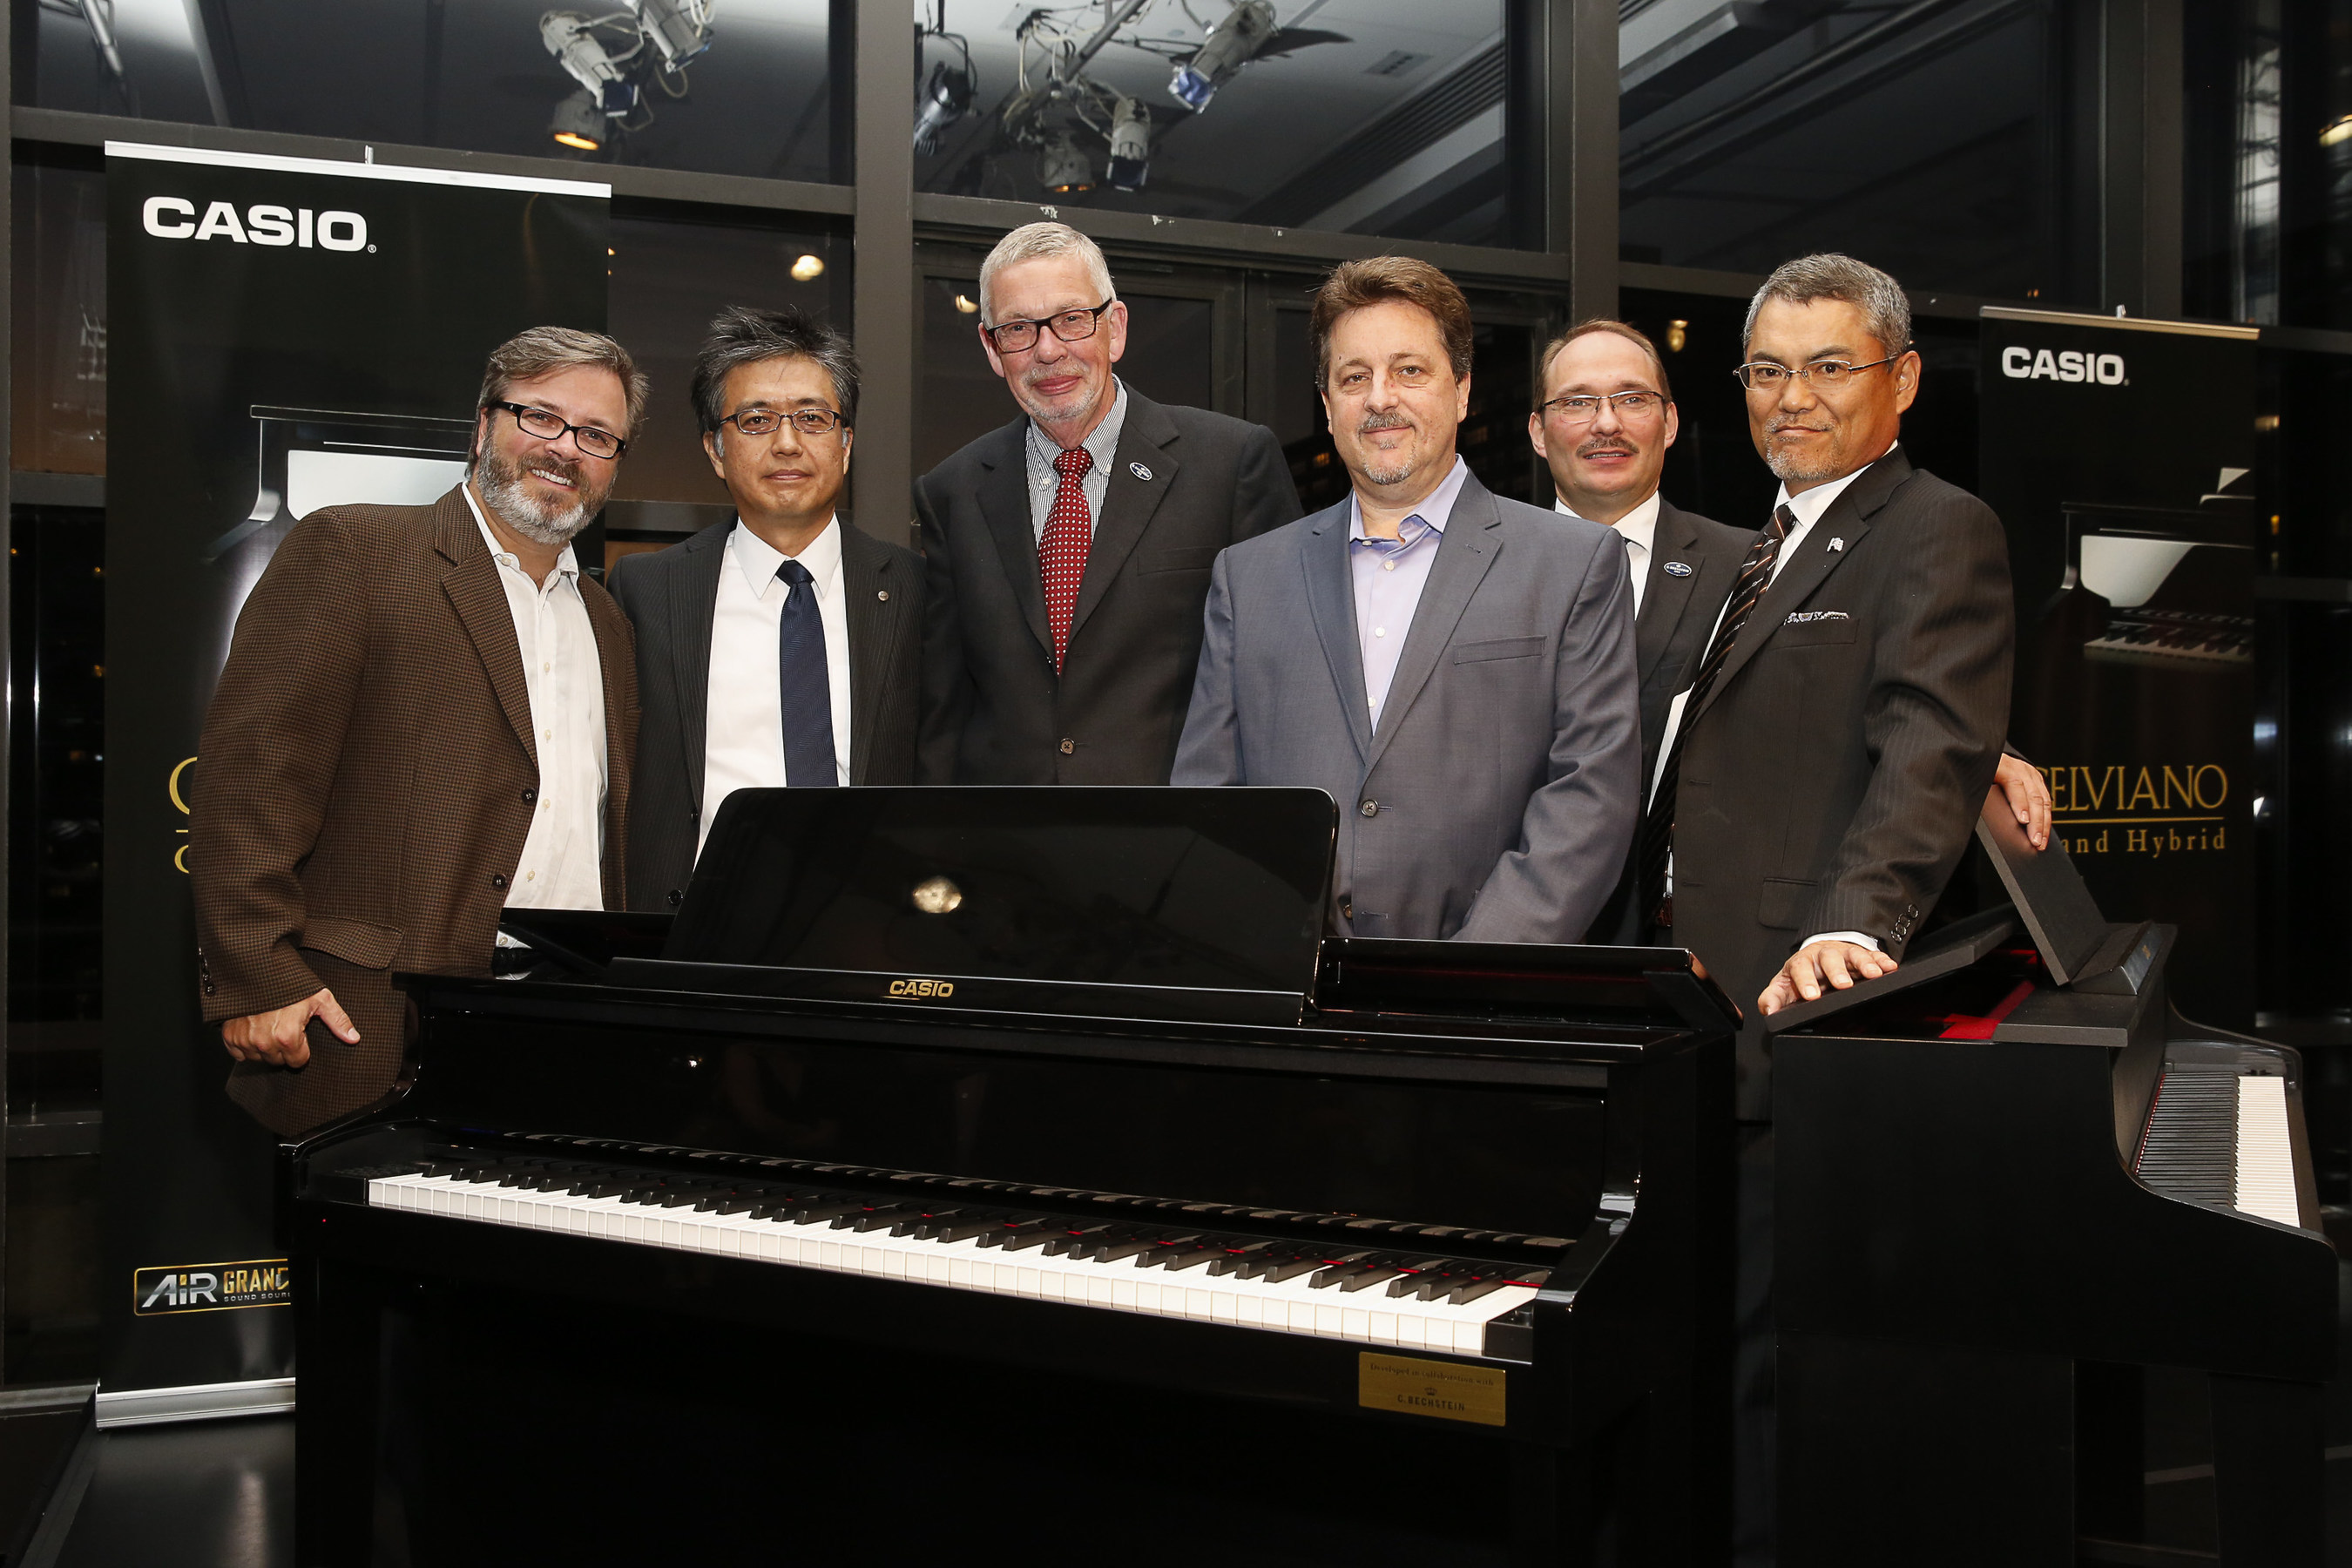 Casio Launches Grand Hybrid Pianos At Lincoln Center Event